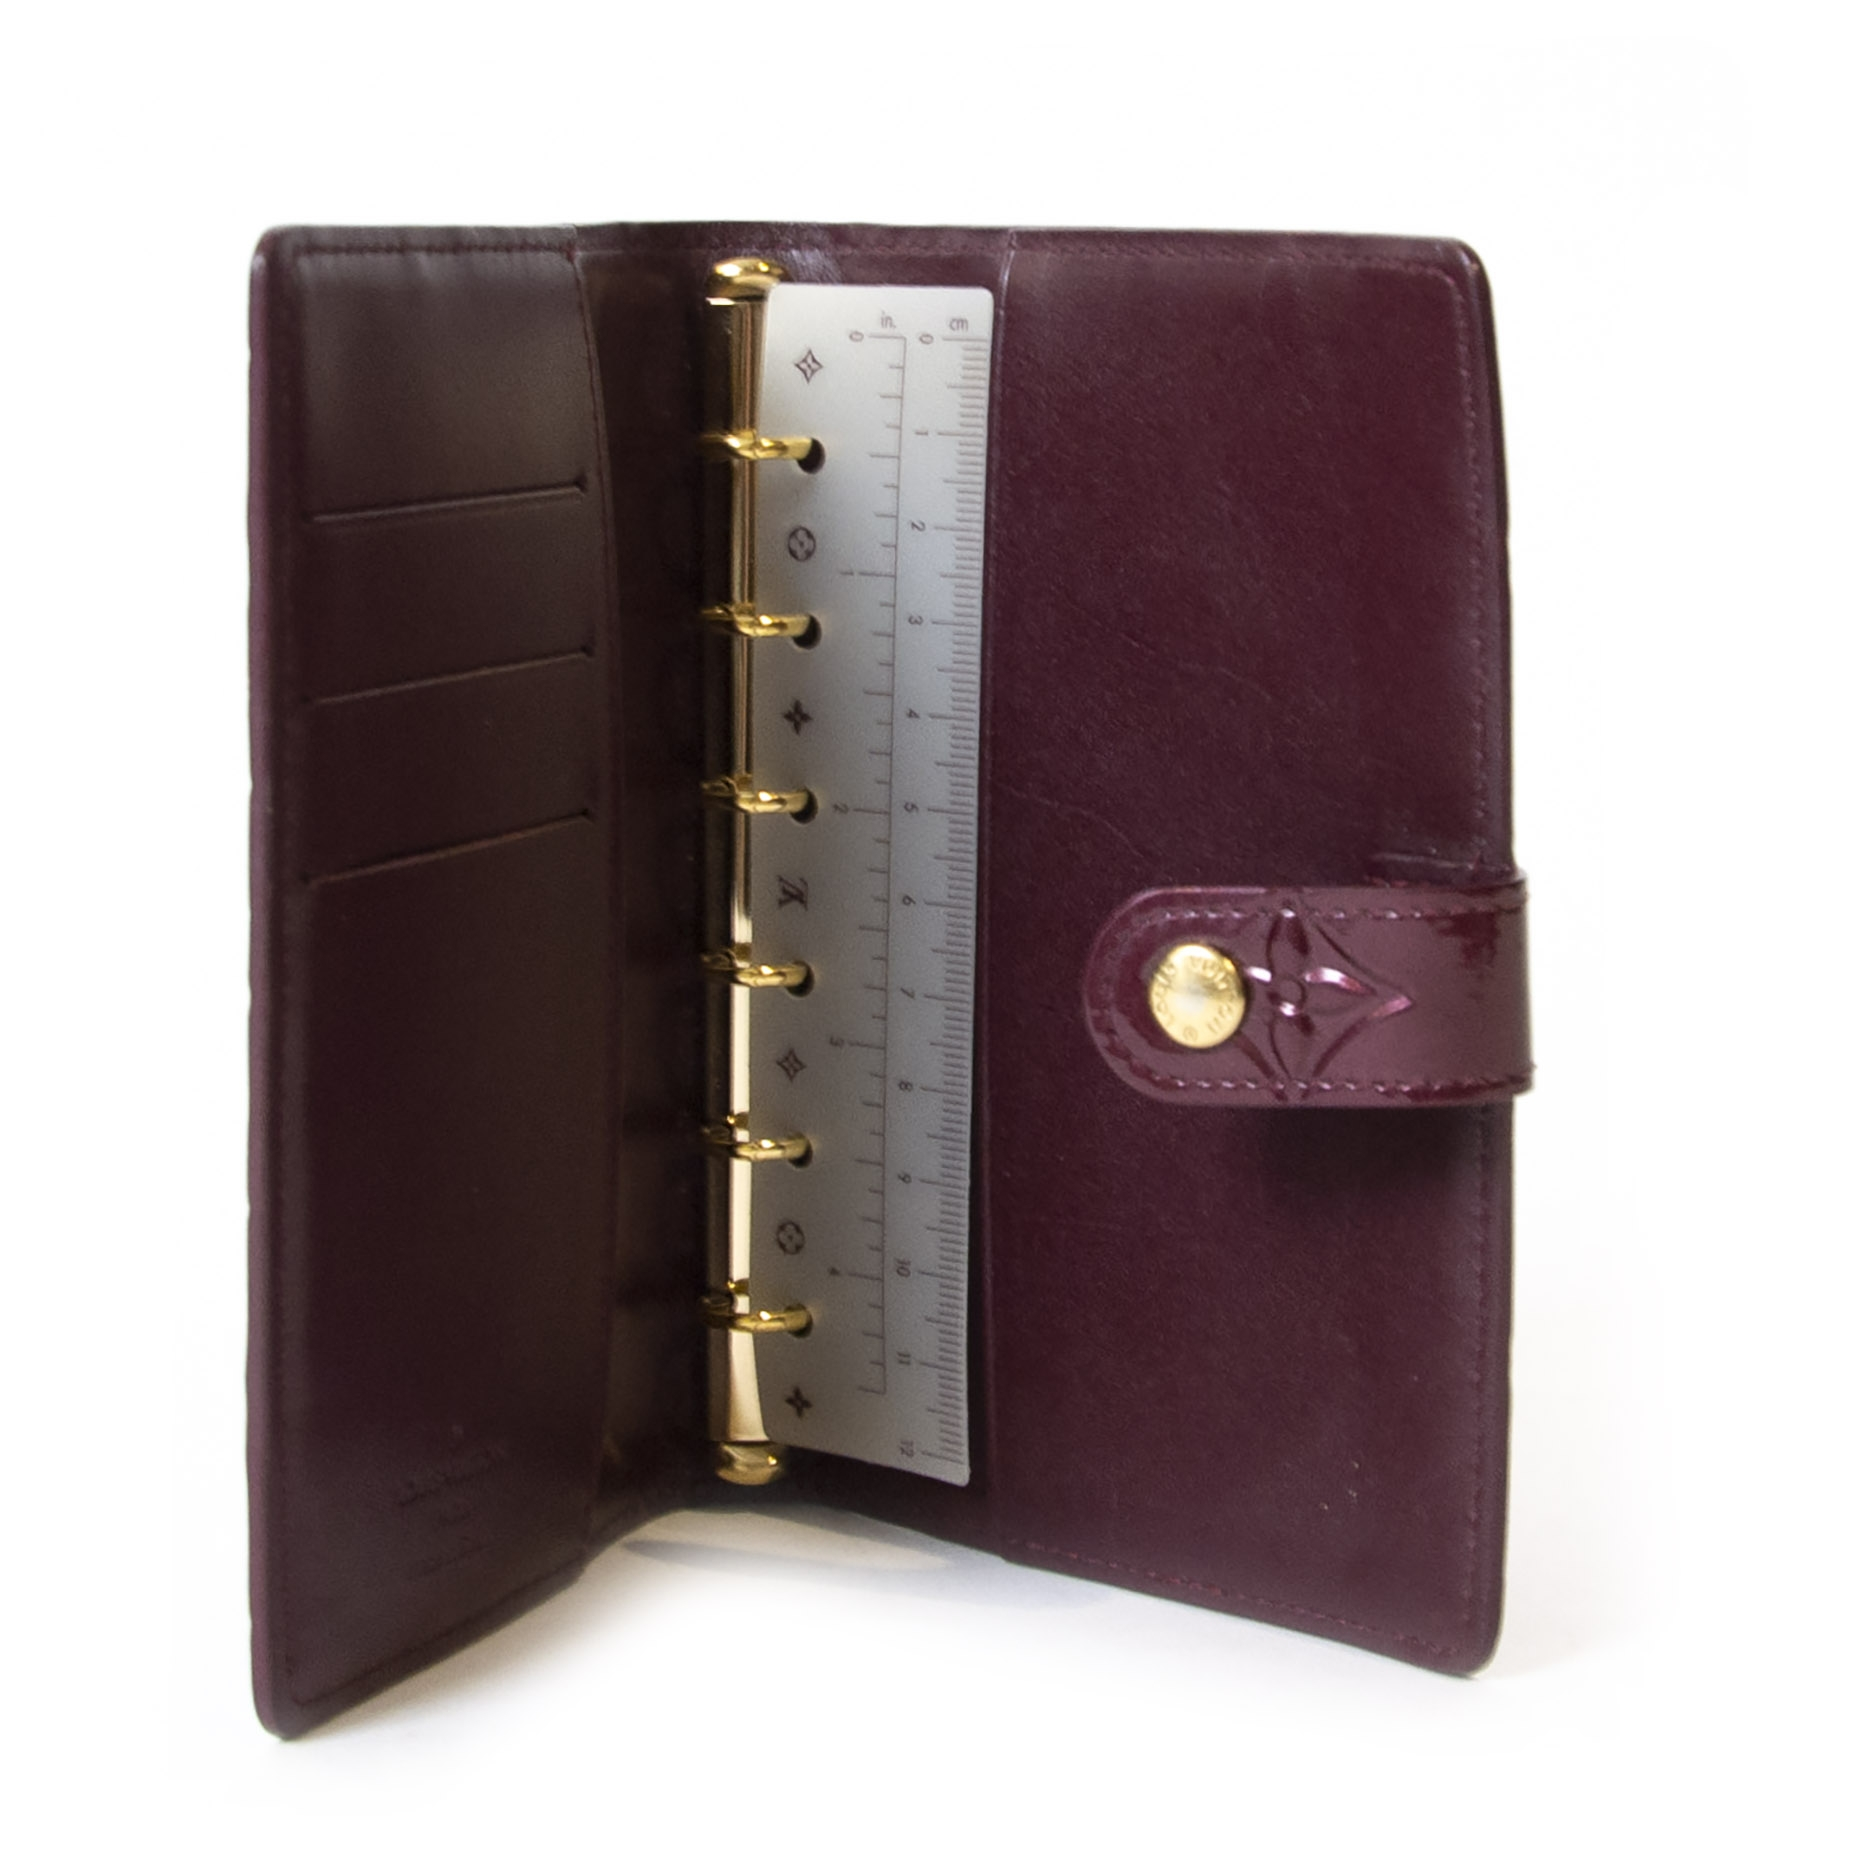 We buy and sell your authentic Louis Vuitton Amarante Vernis Agenda PM for the best price